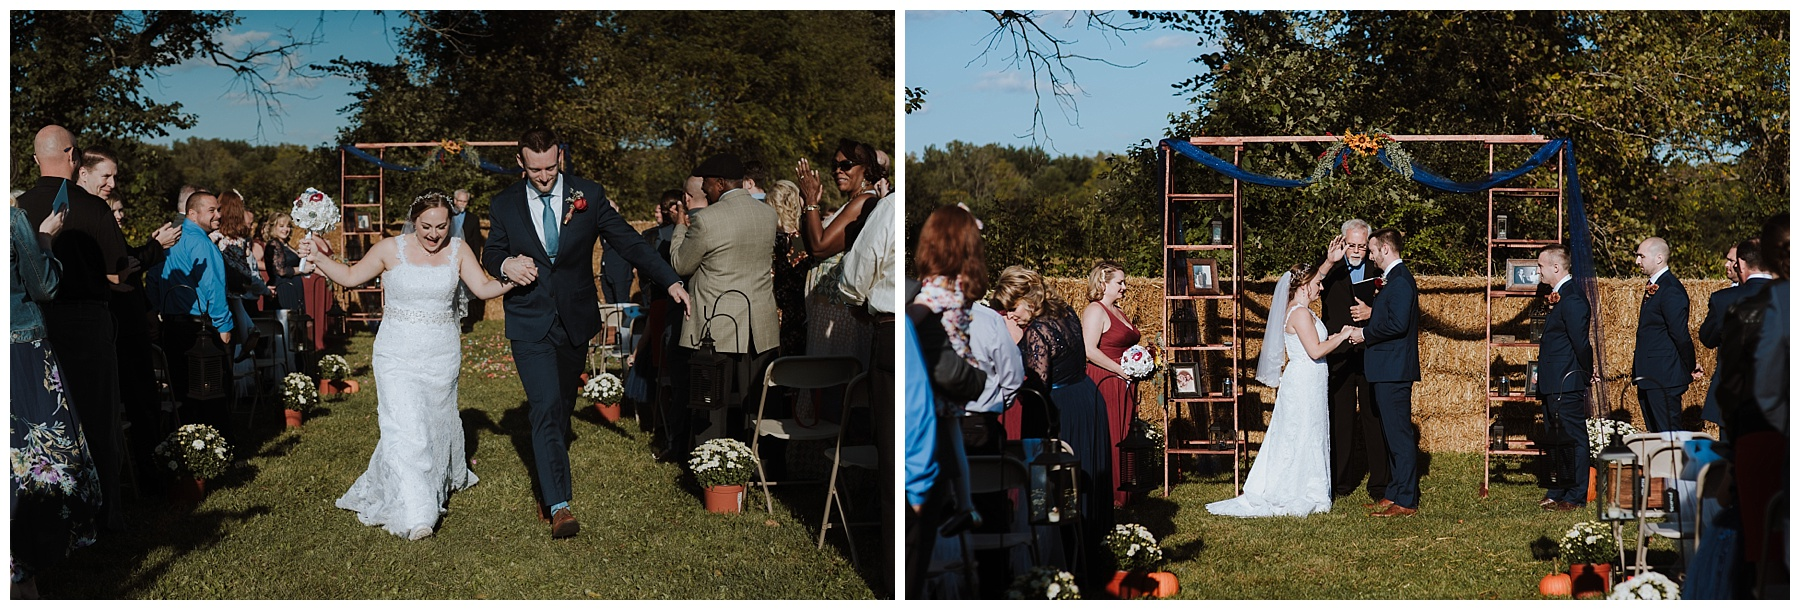 Fall Backyard Wedding Michigan